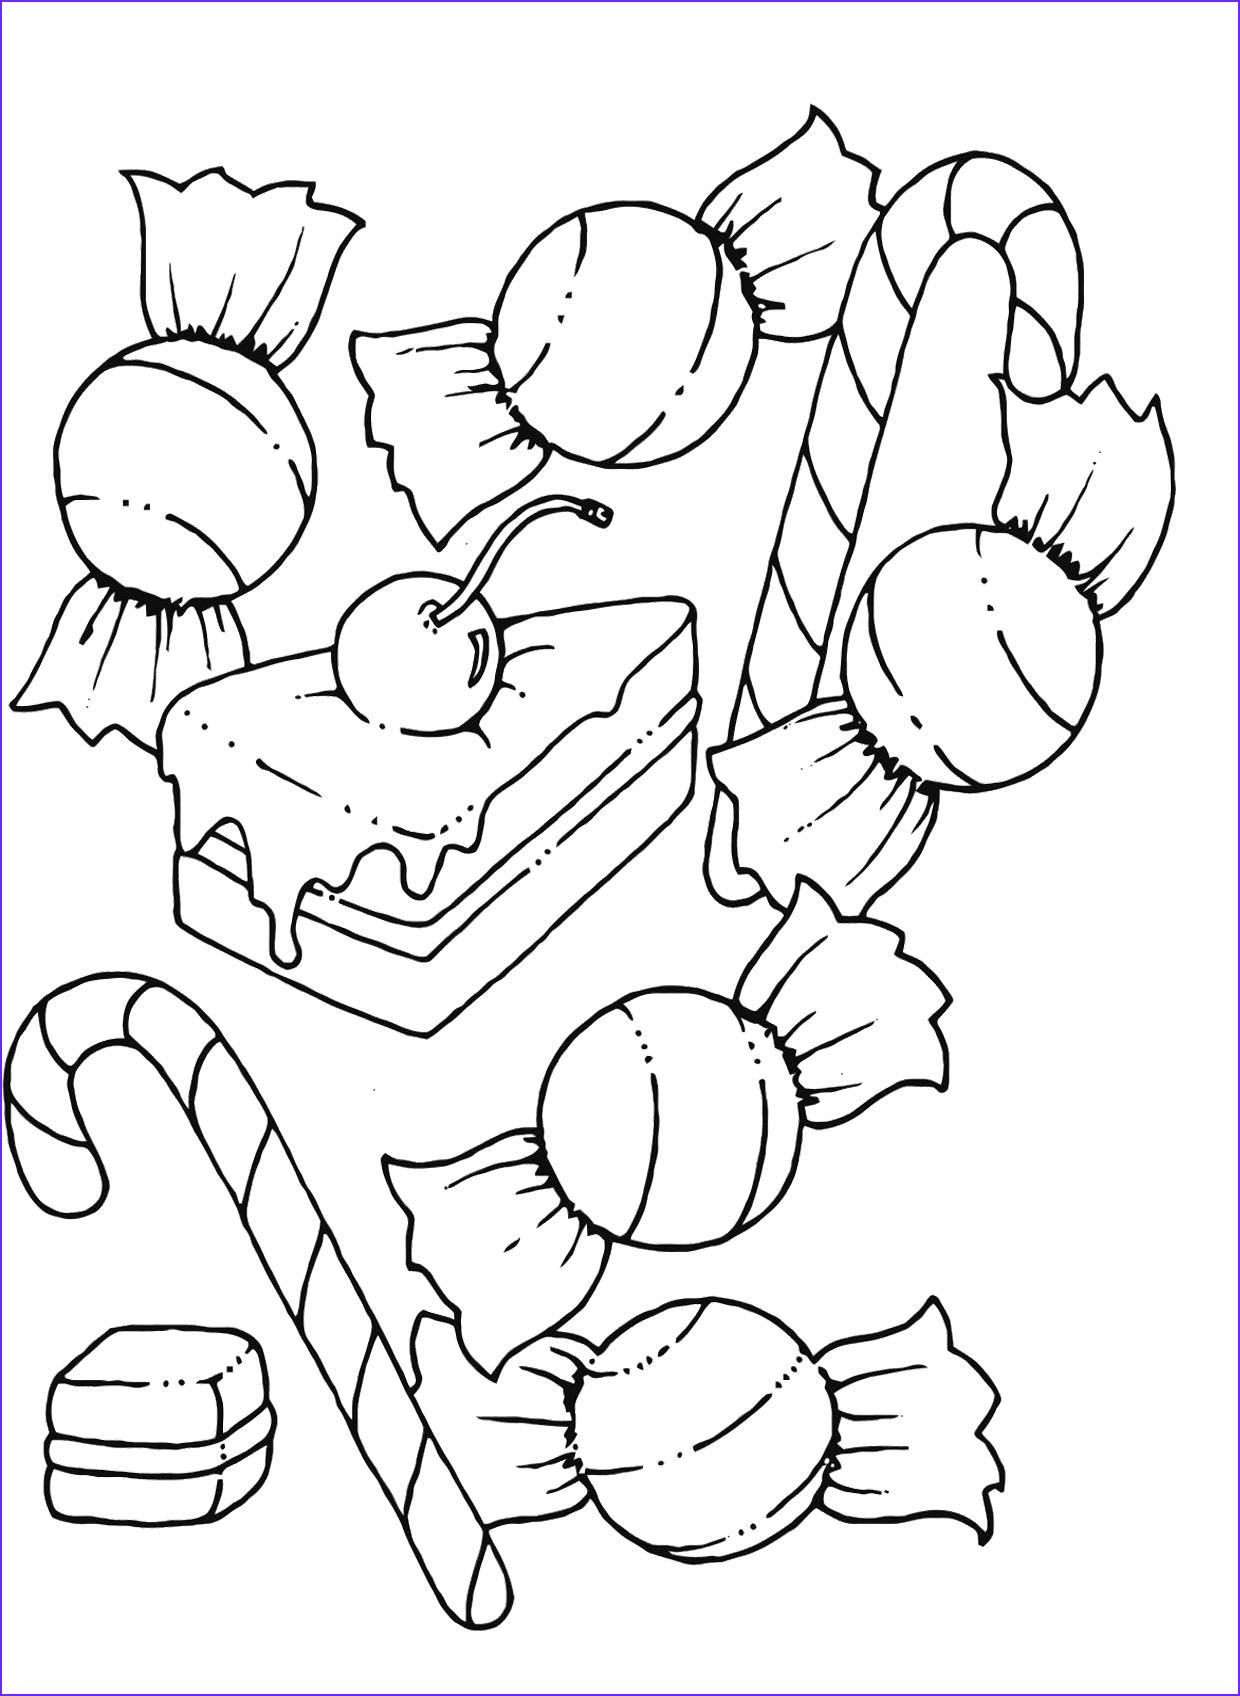 Sweets Coloring Pages Luxury Photography A Collection Delicious Candy Coloring Pages